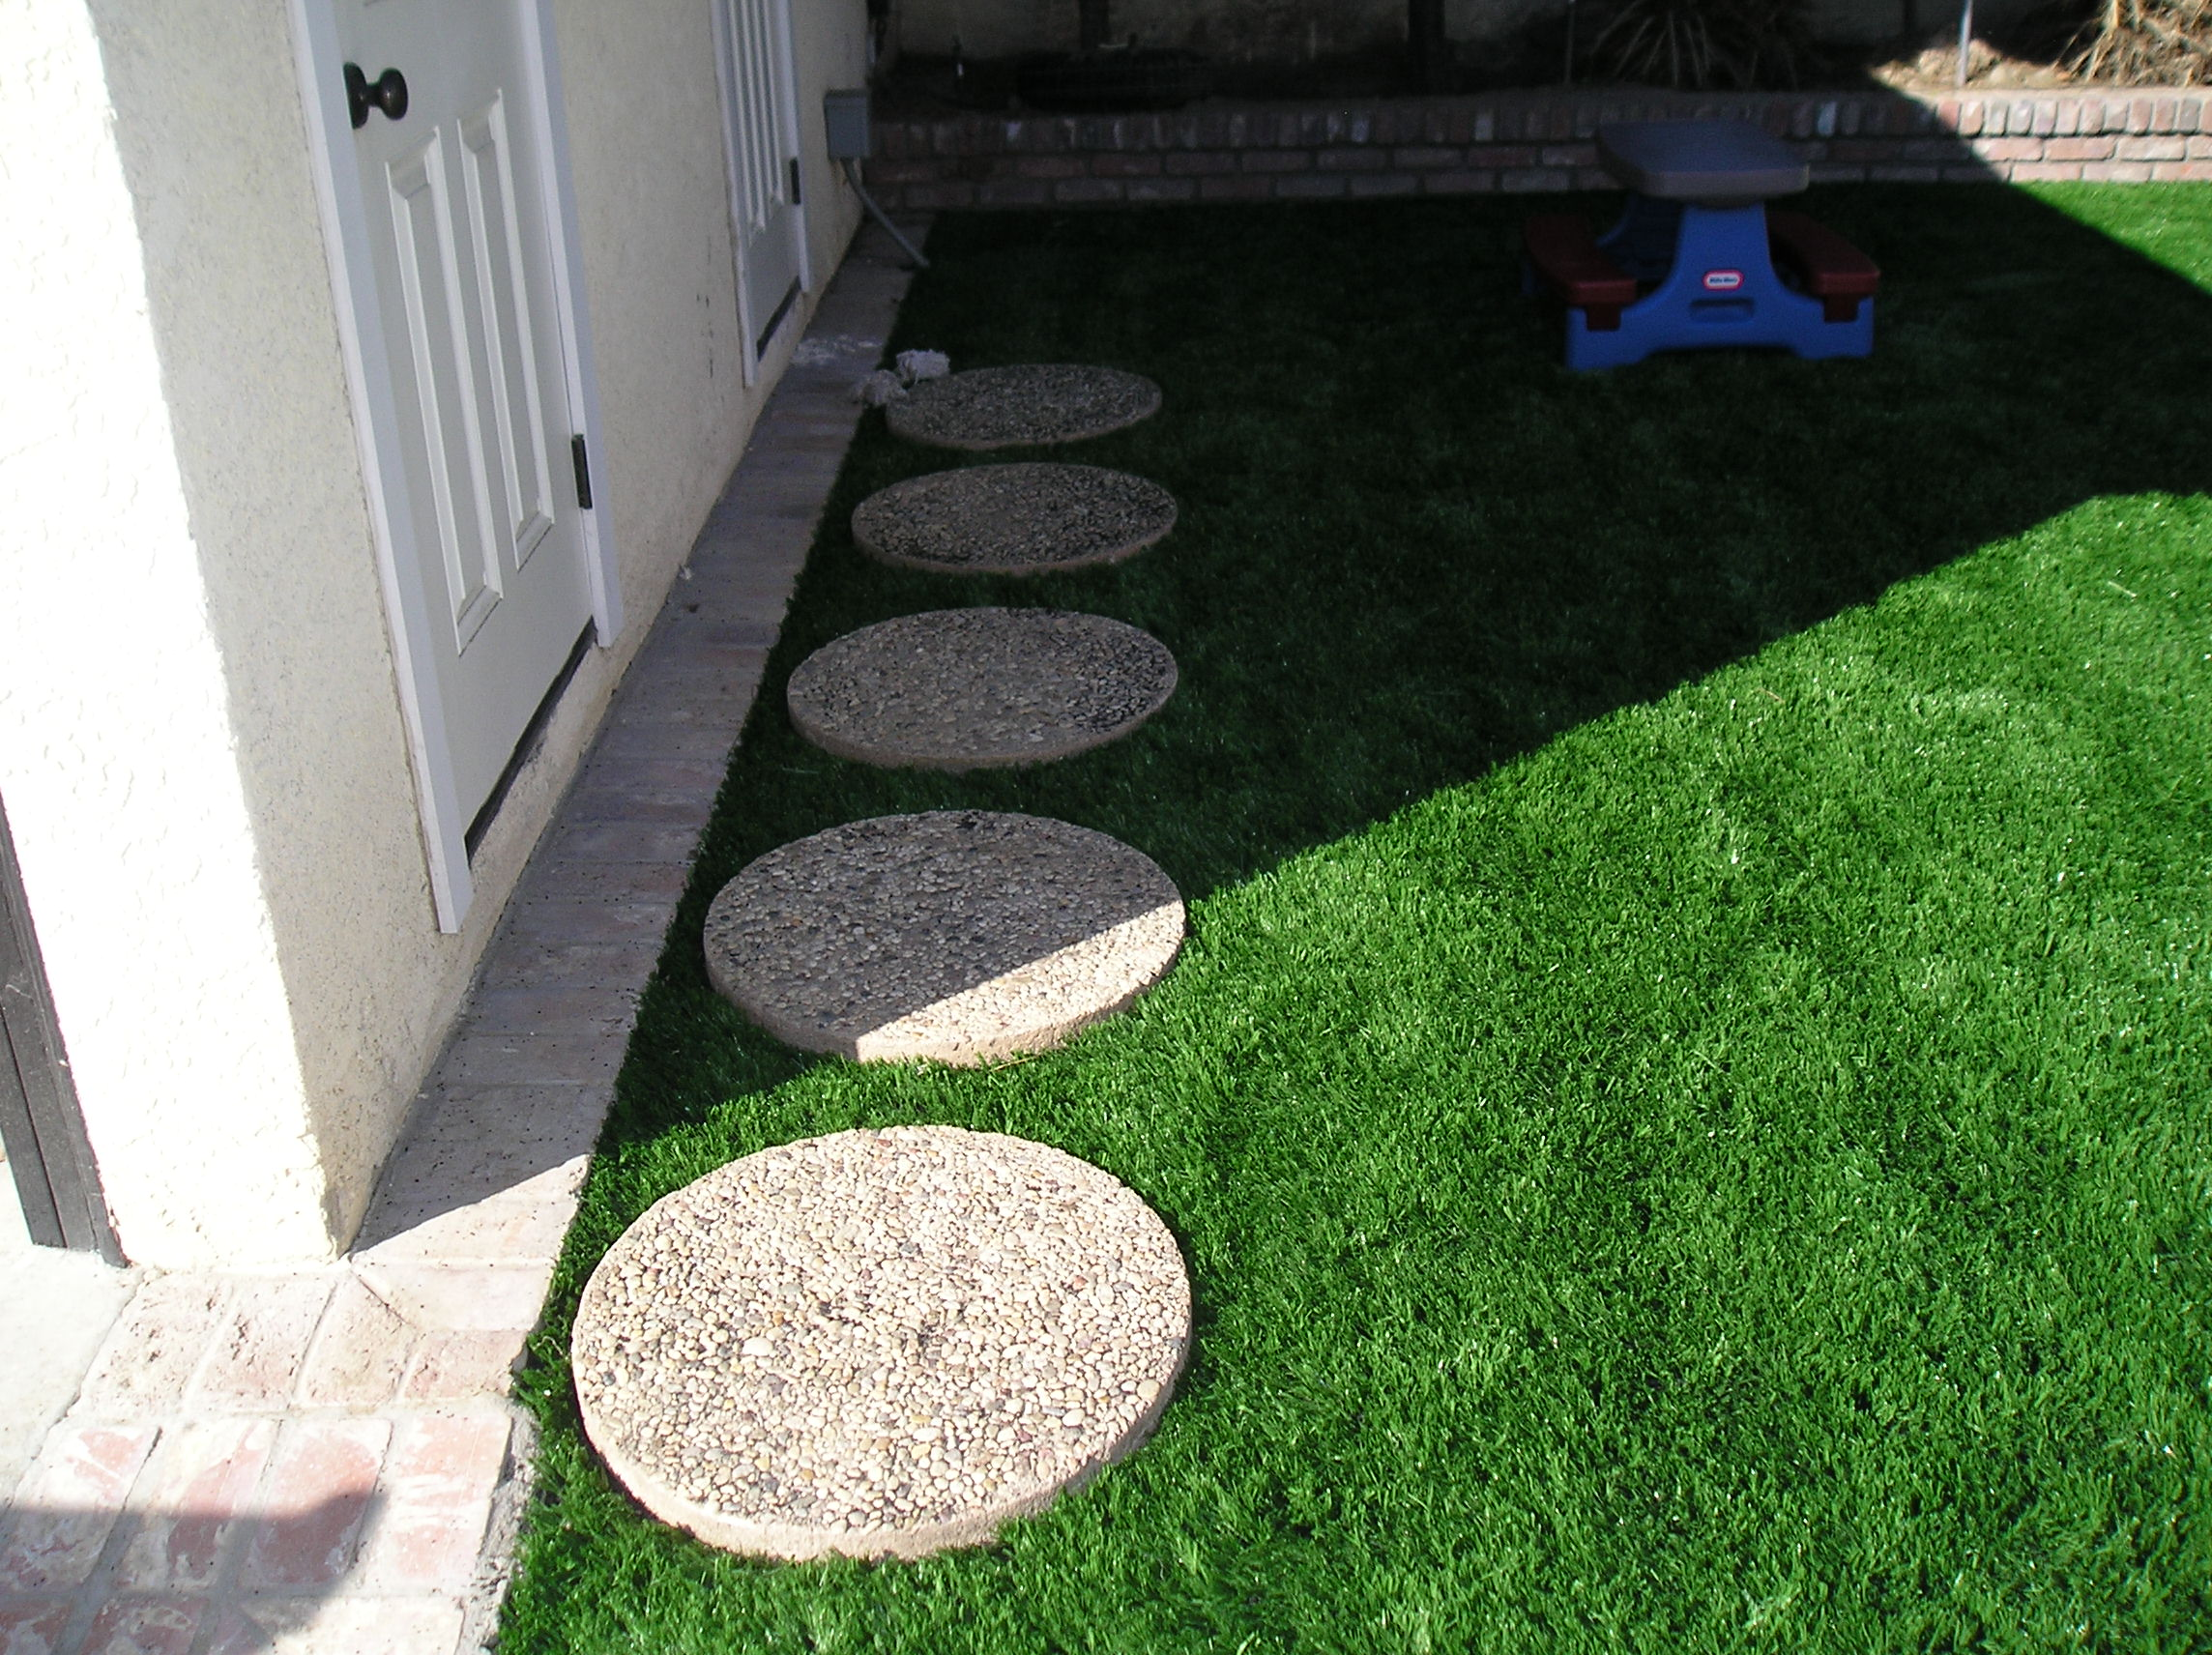 Super Natural 80 artificial turf,synthetic turf,artificial turf installation,how to install artificial turf,used artificial turf,artificial turf,synthetic turf,artificial turf installation,how to install artificial turf,used artificial turf